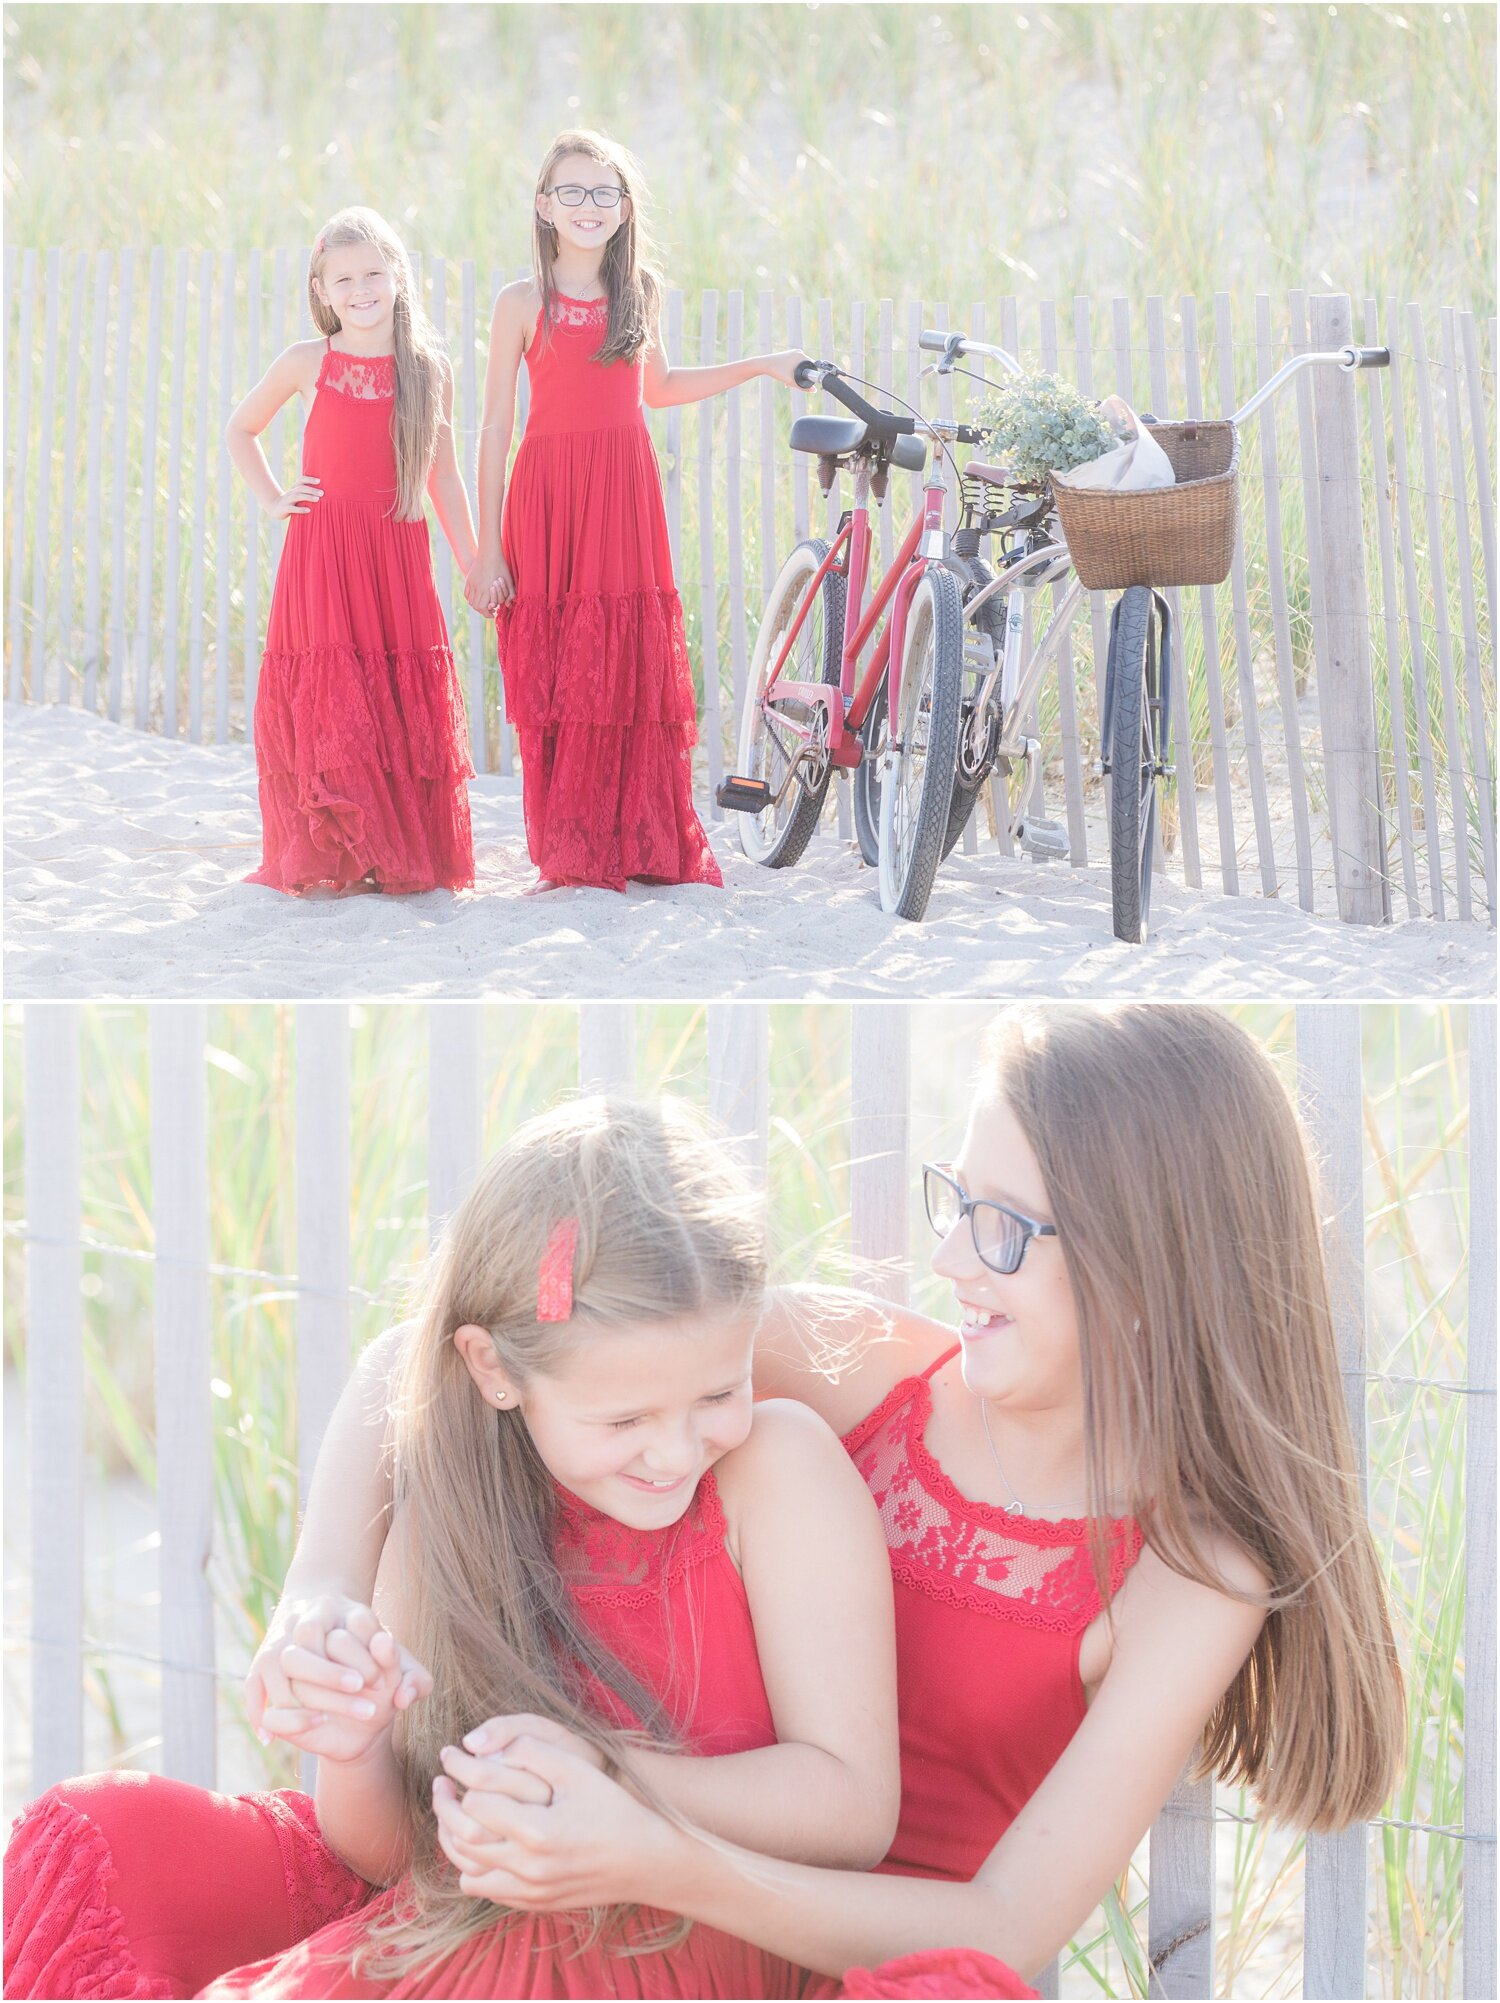 Holiday photos in red dresses on the beach in Seaside Park.